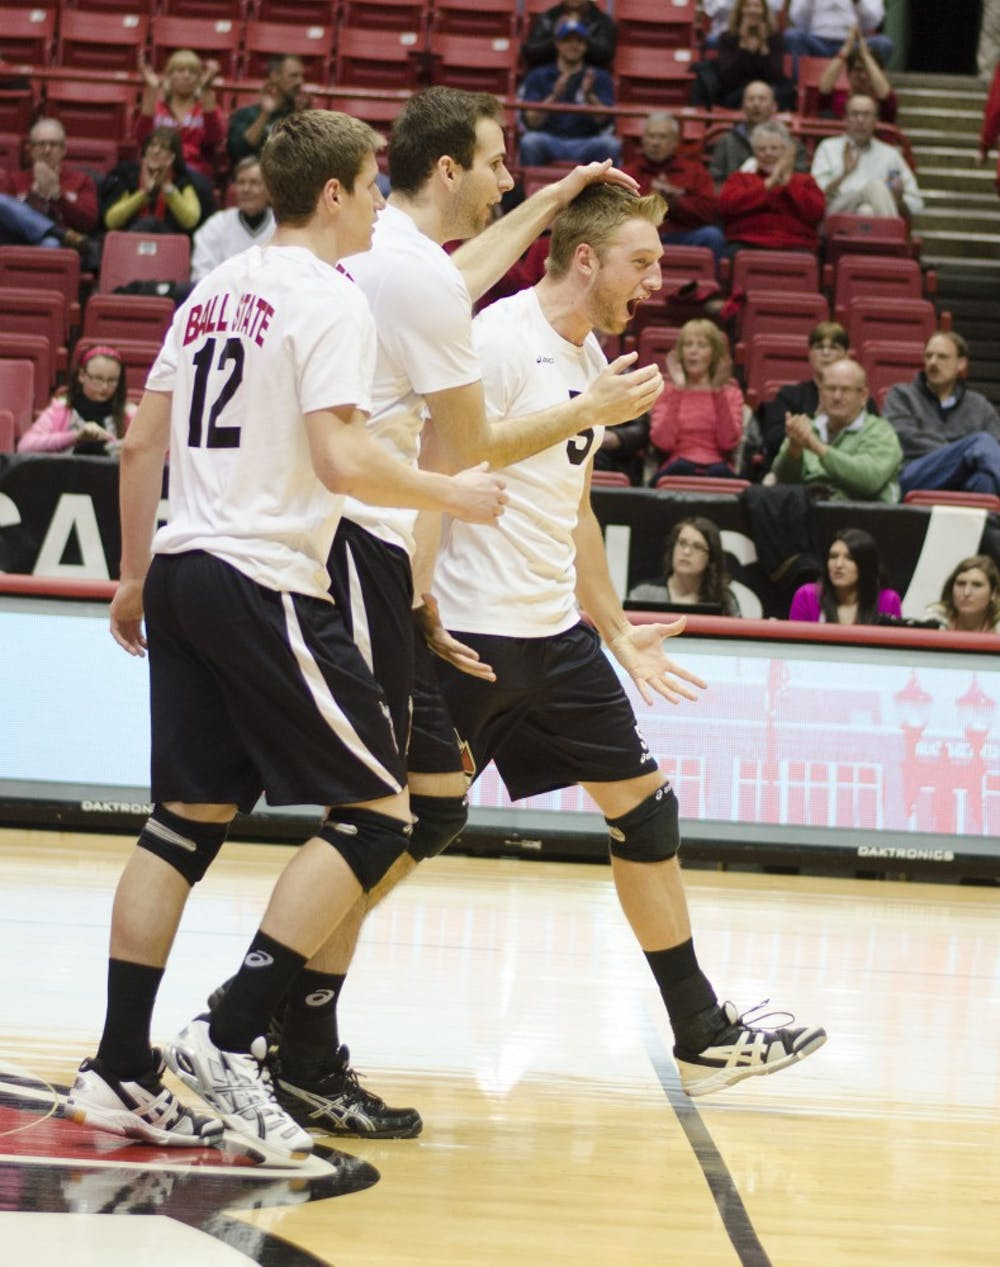 Senior outside attacker Matt Sutherland, senior middle attacker Matt Leske and senior setting Graham McIlvaine celebrate after getting a point in the first set against Mount Olive on March 1 at Worthen Arena. DN PHOTO BREANNA DAUGHERTY